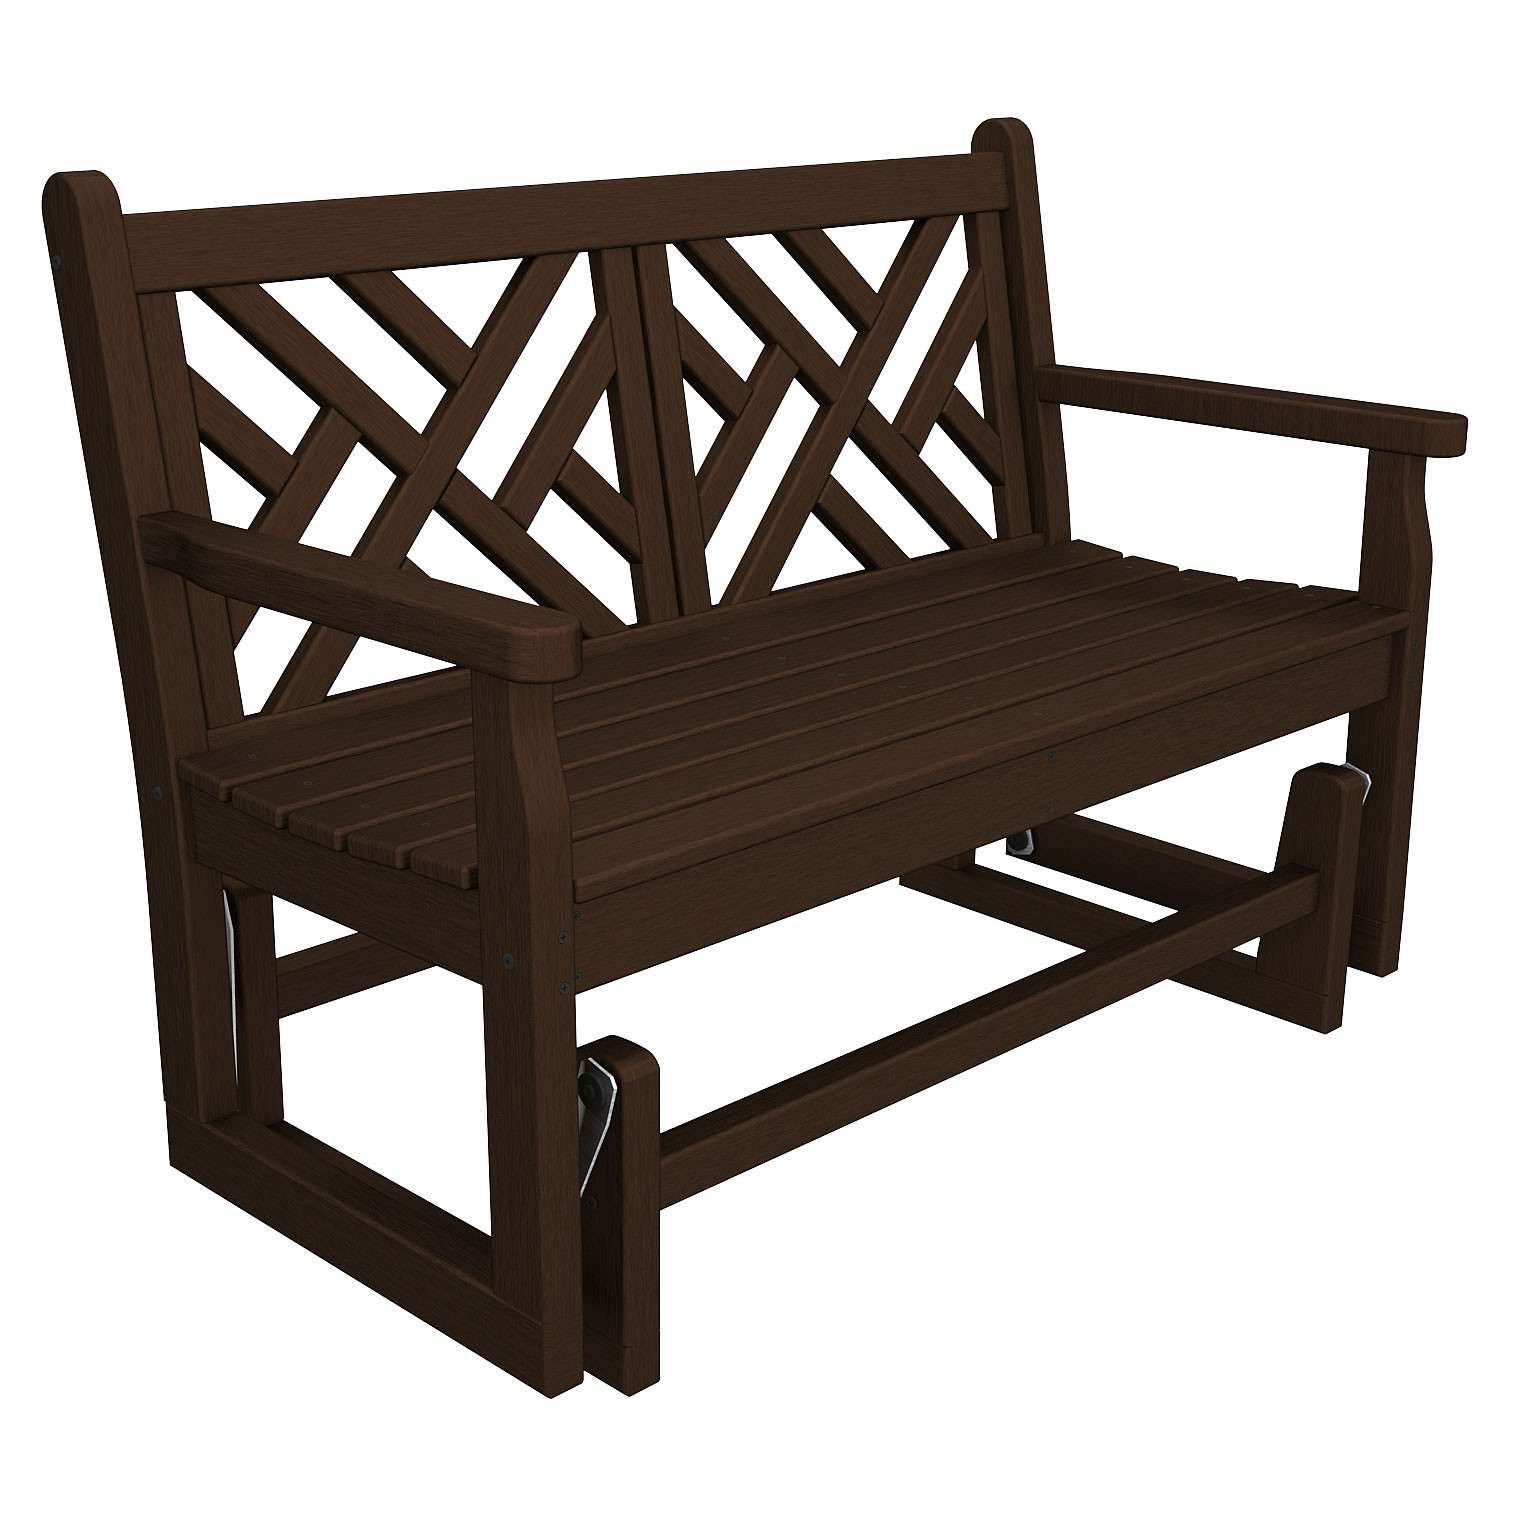 Polywood Chippendale 48 In Glider Bench Chippendale Collection Polywood 174 Outdoor Furniture